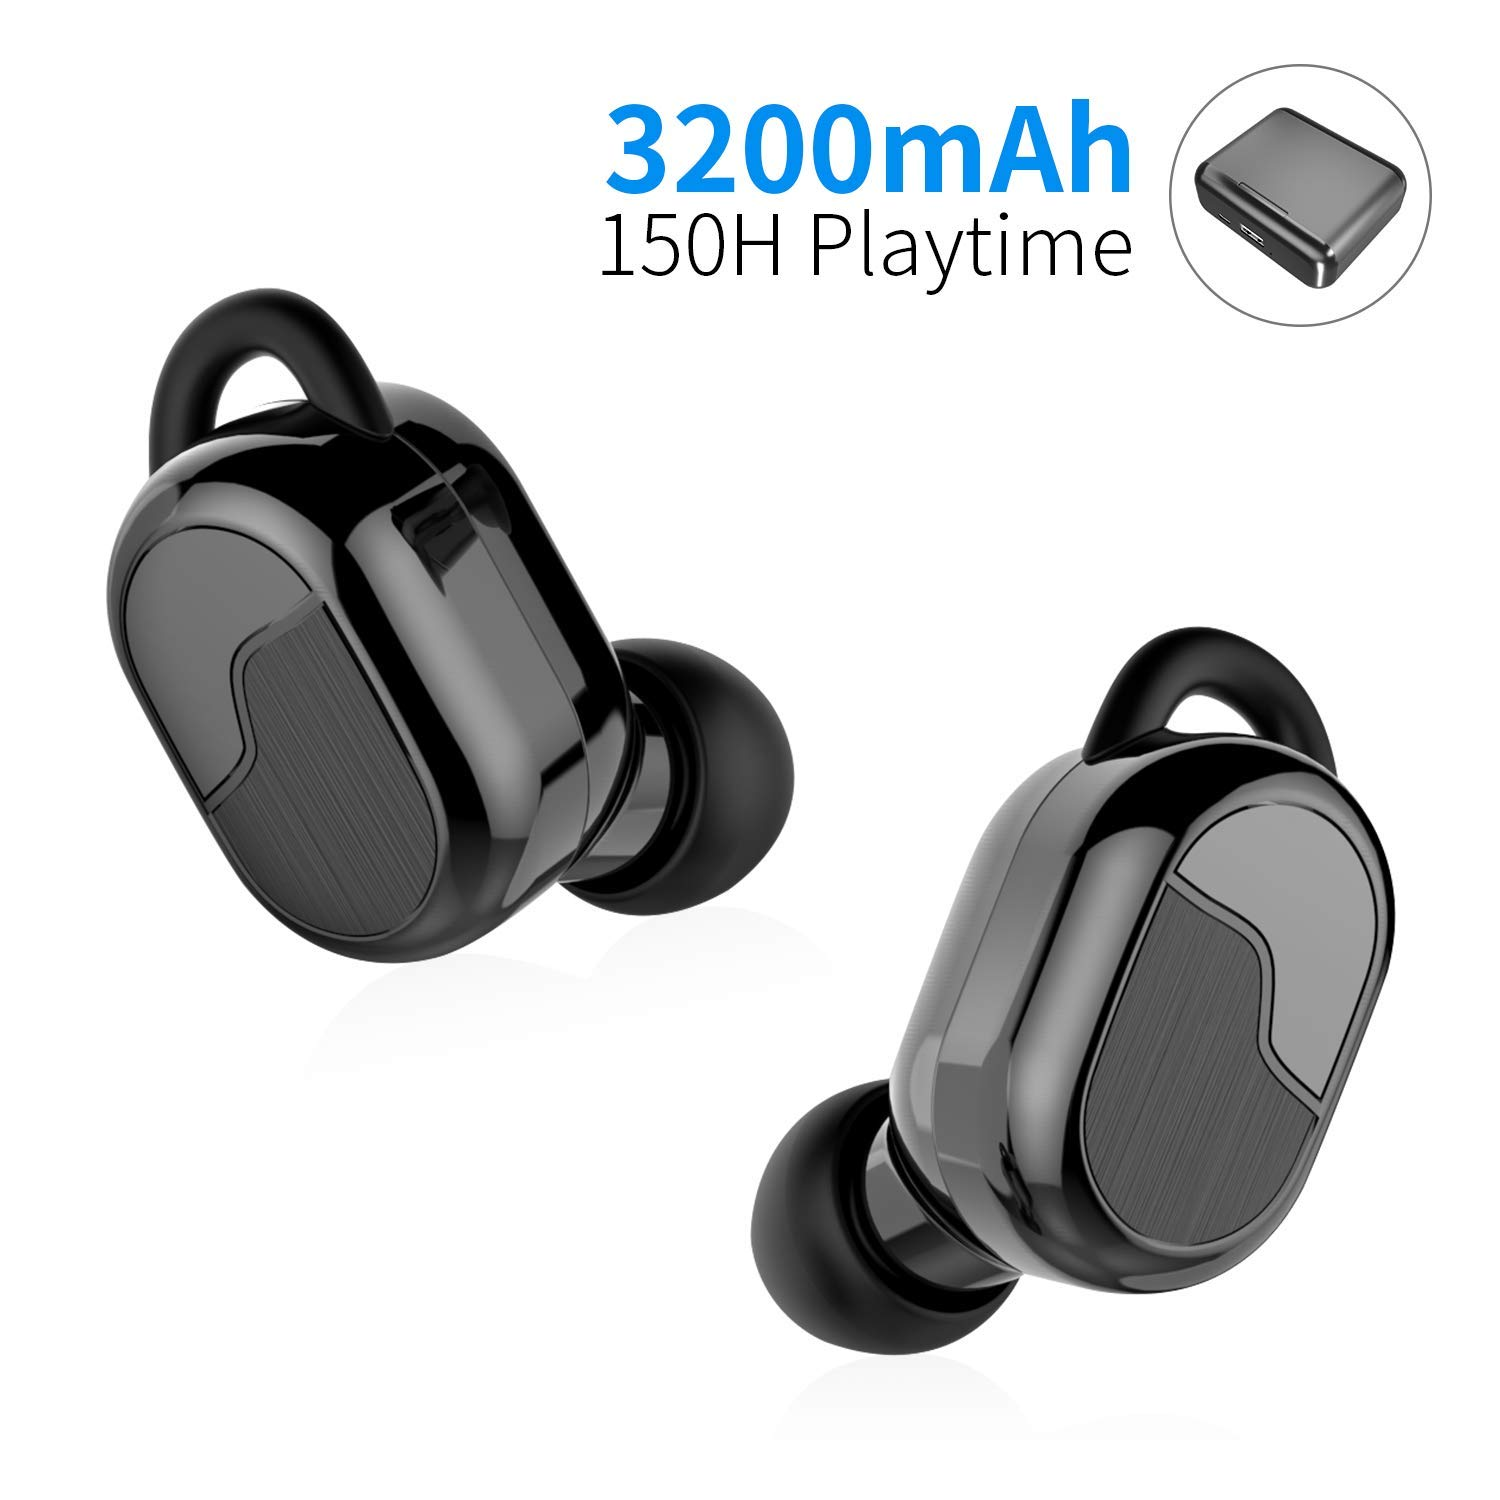 Wireless Earbuds,Latest Bluetooth 5.0 True Wireless Bluetooth Earbuds with Charging Case 3200mAh TWS Sport in-Ear 150H Playtime Stereo Headphone Auto Pairing Built-in Mic CVC 8.0 Deep Bass Headset